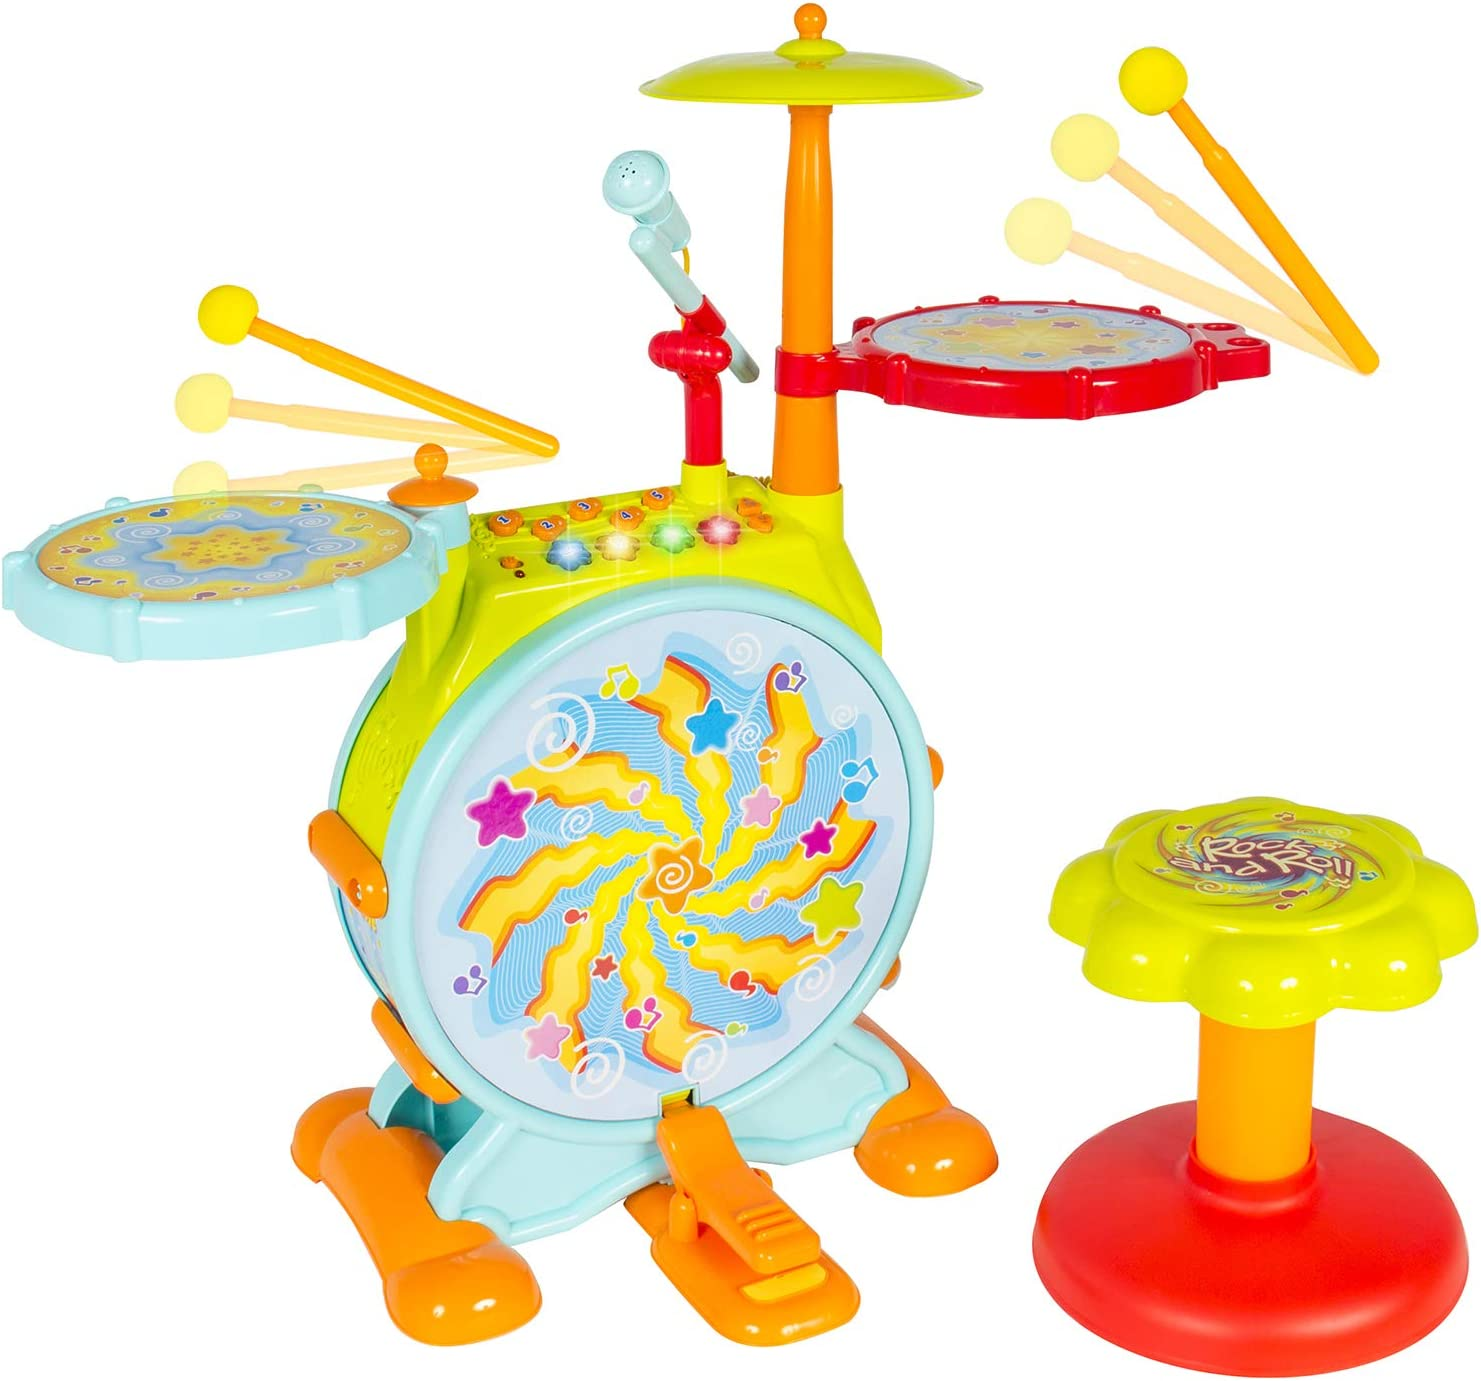 Best Choice Kid's Drum Set – Best for 3+ year kids